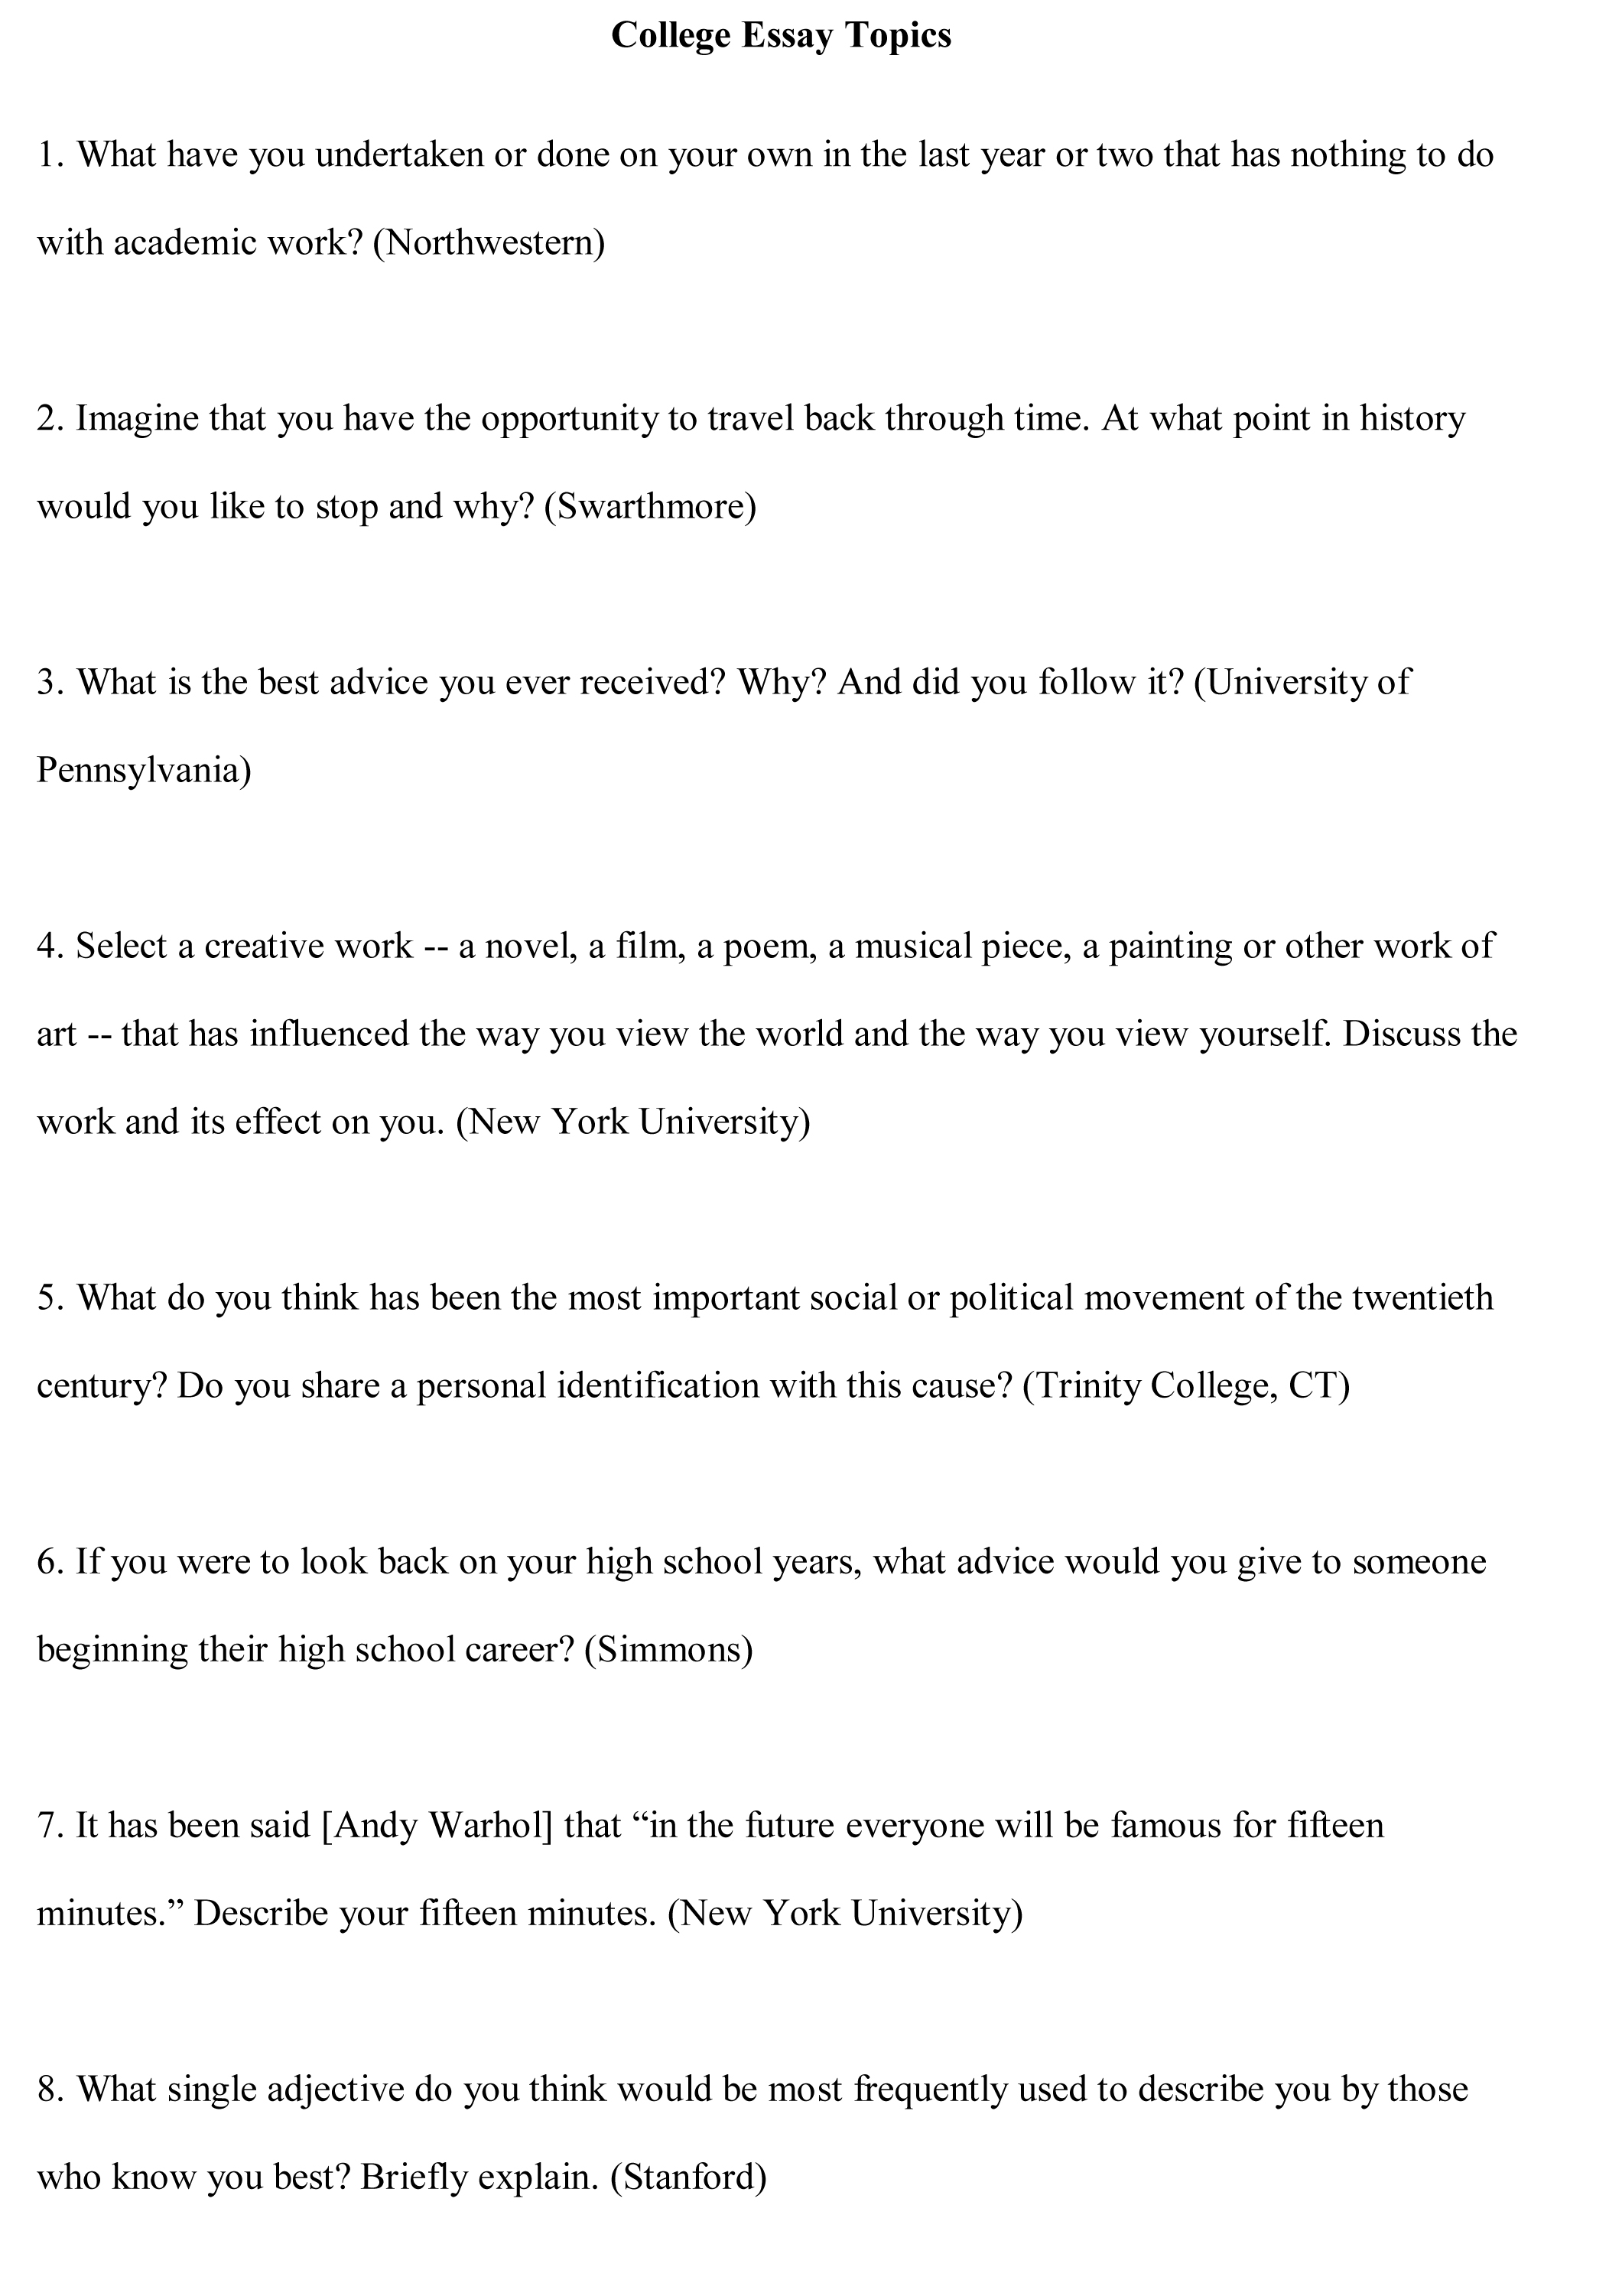 004 College Essay Topics Free Sample1 Good For Essays Top Best Prompts Great Full